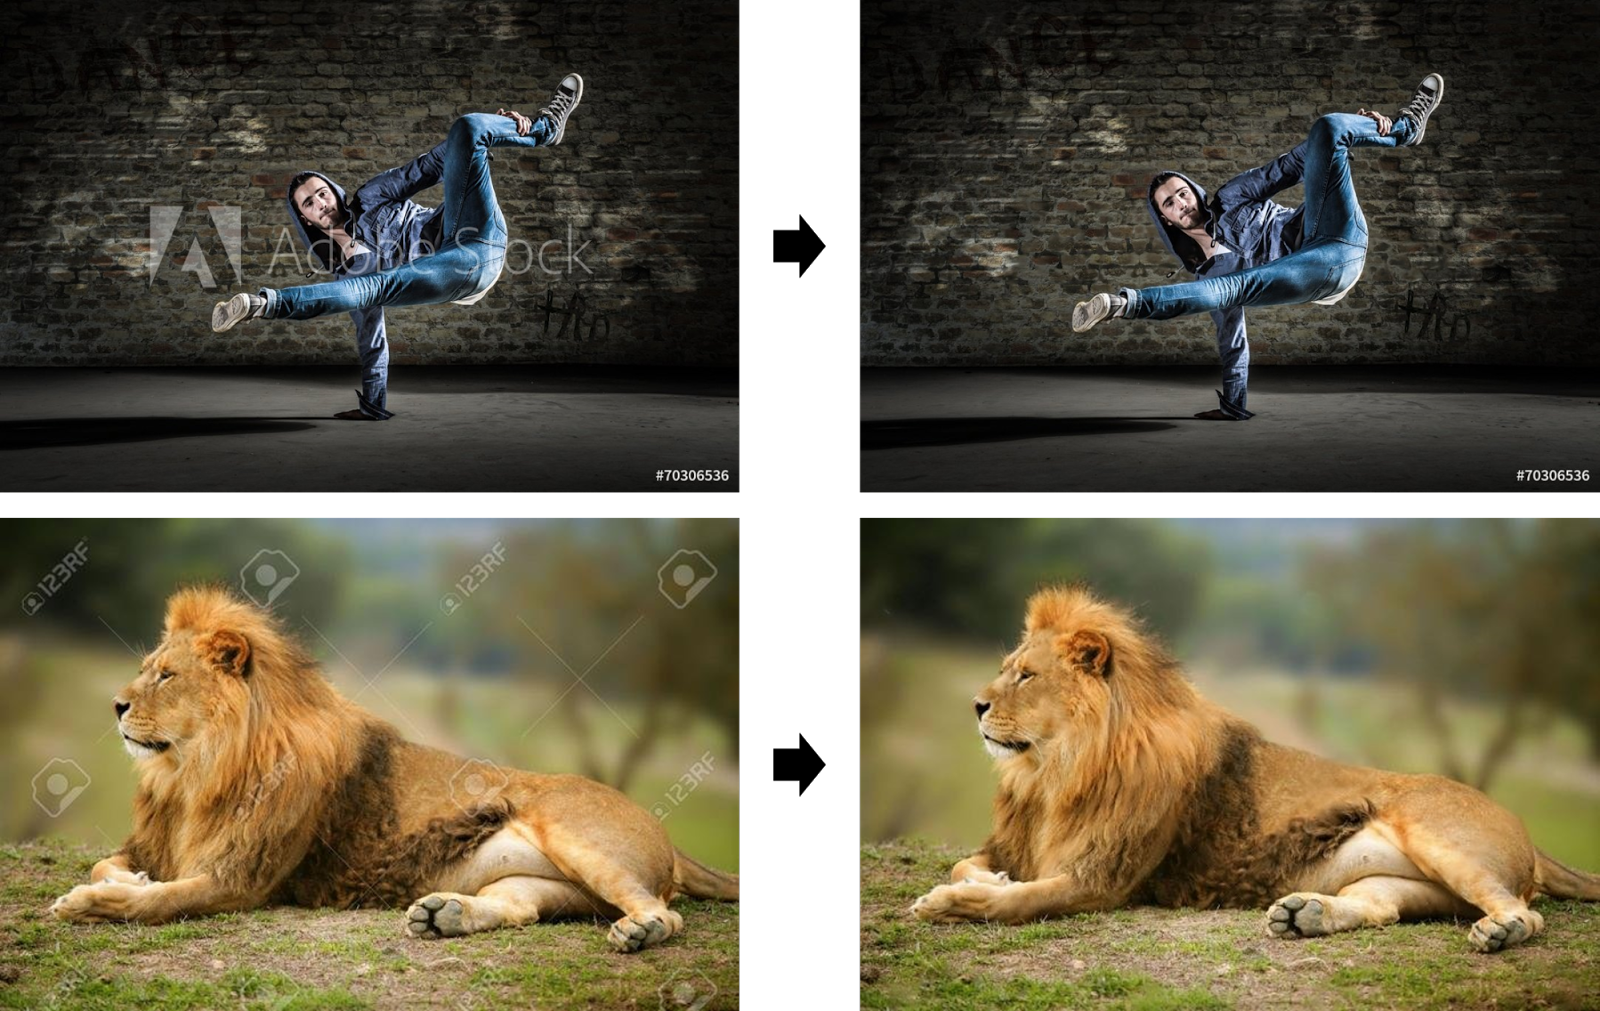 Adobe Stock Images Remove Watermark Google Ai Blog Making Visible Watermarks More Effective